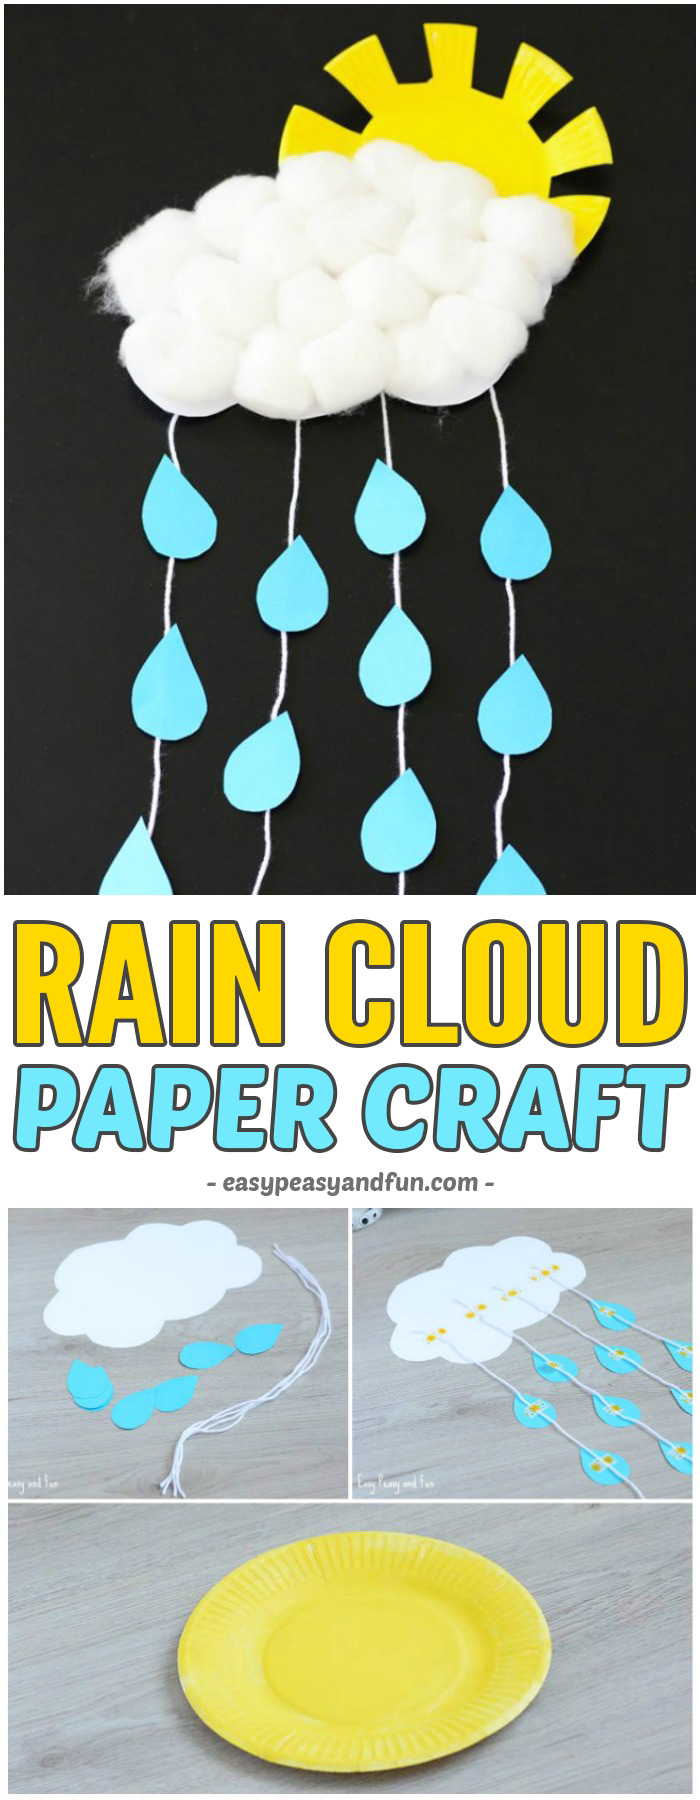 Rain Cloud Paper Craft for Kids to Make #craftsforkids #papercrafts #activitiesforkids